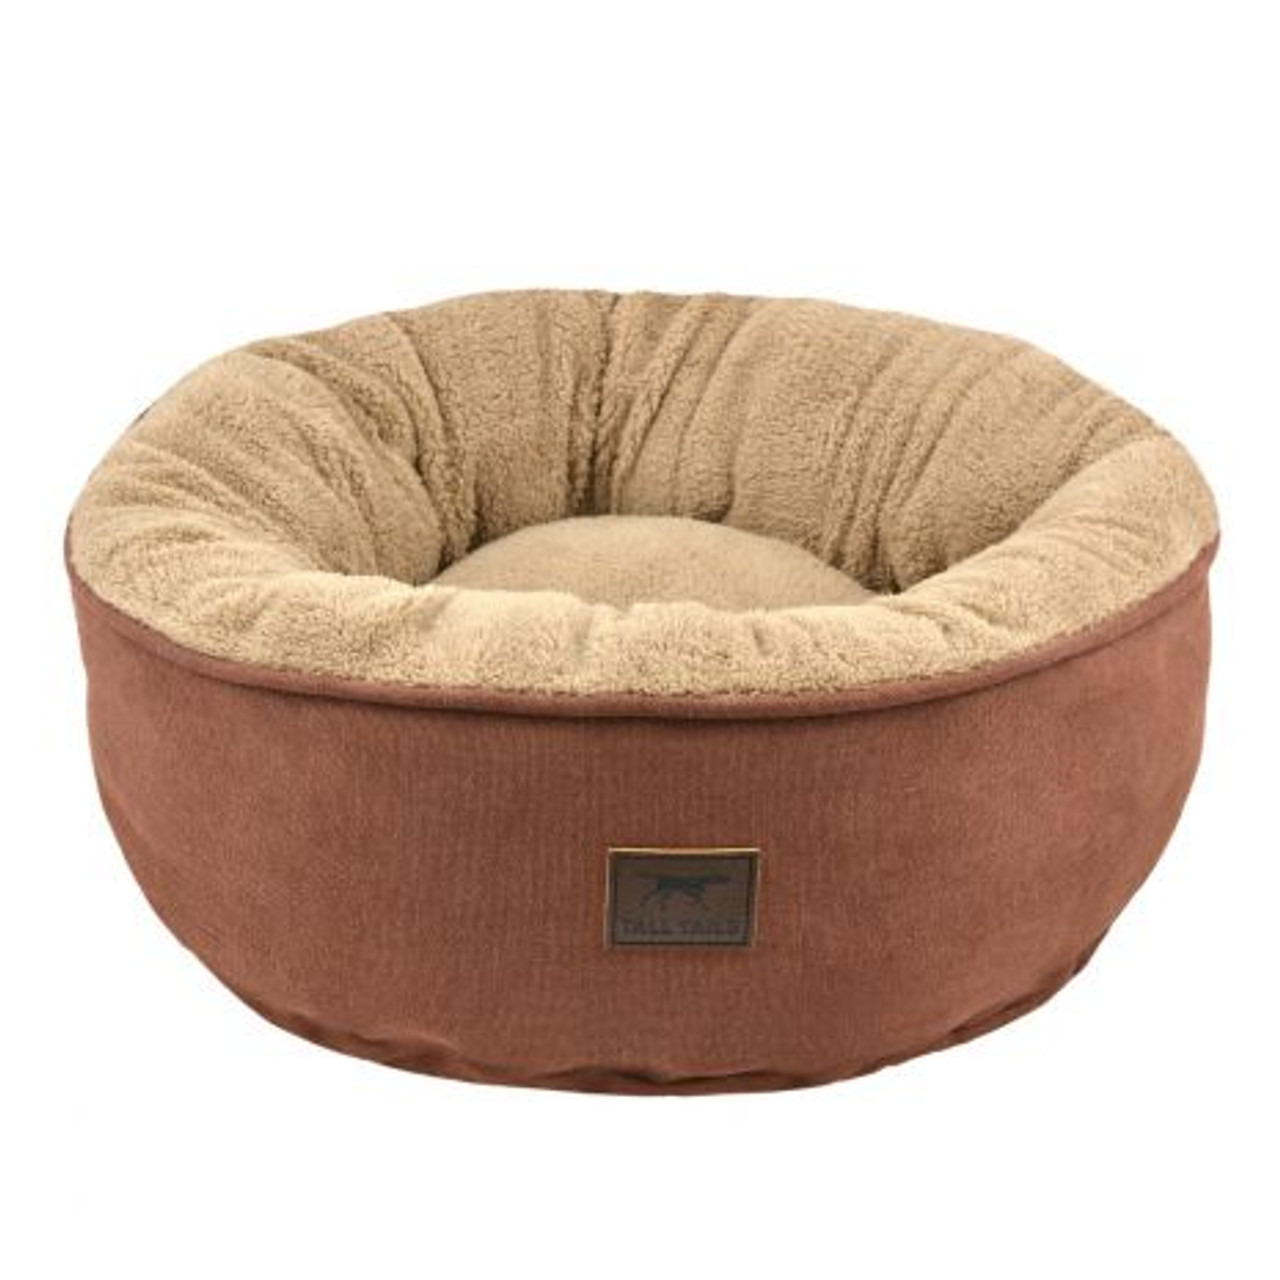 Tall Tails Donut Bed Brown SMALL